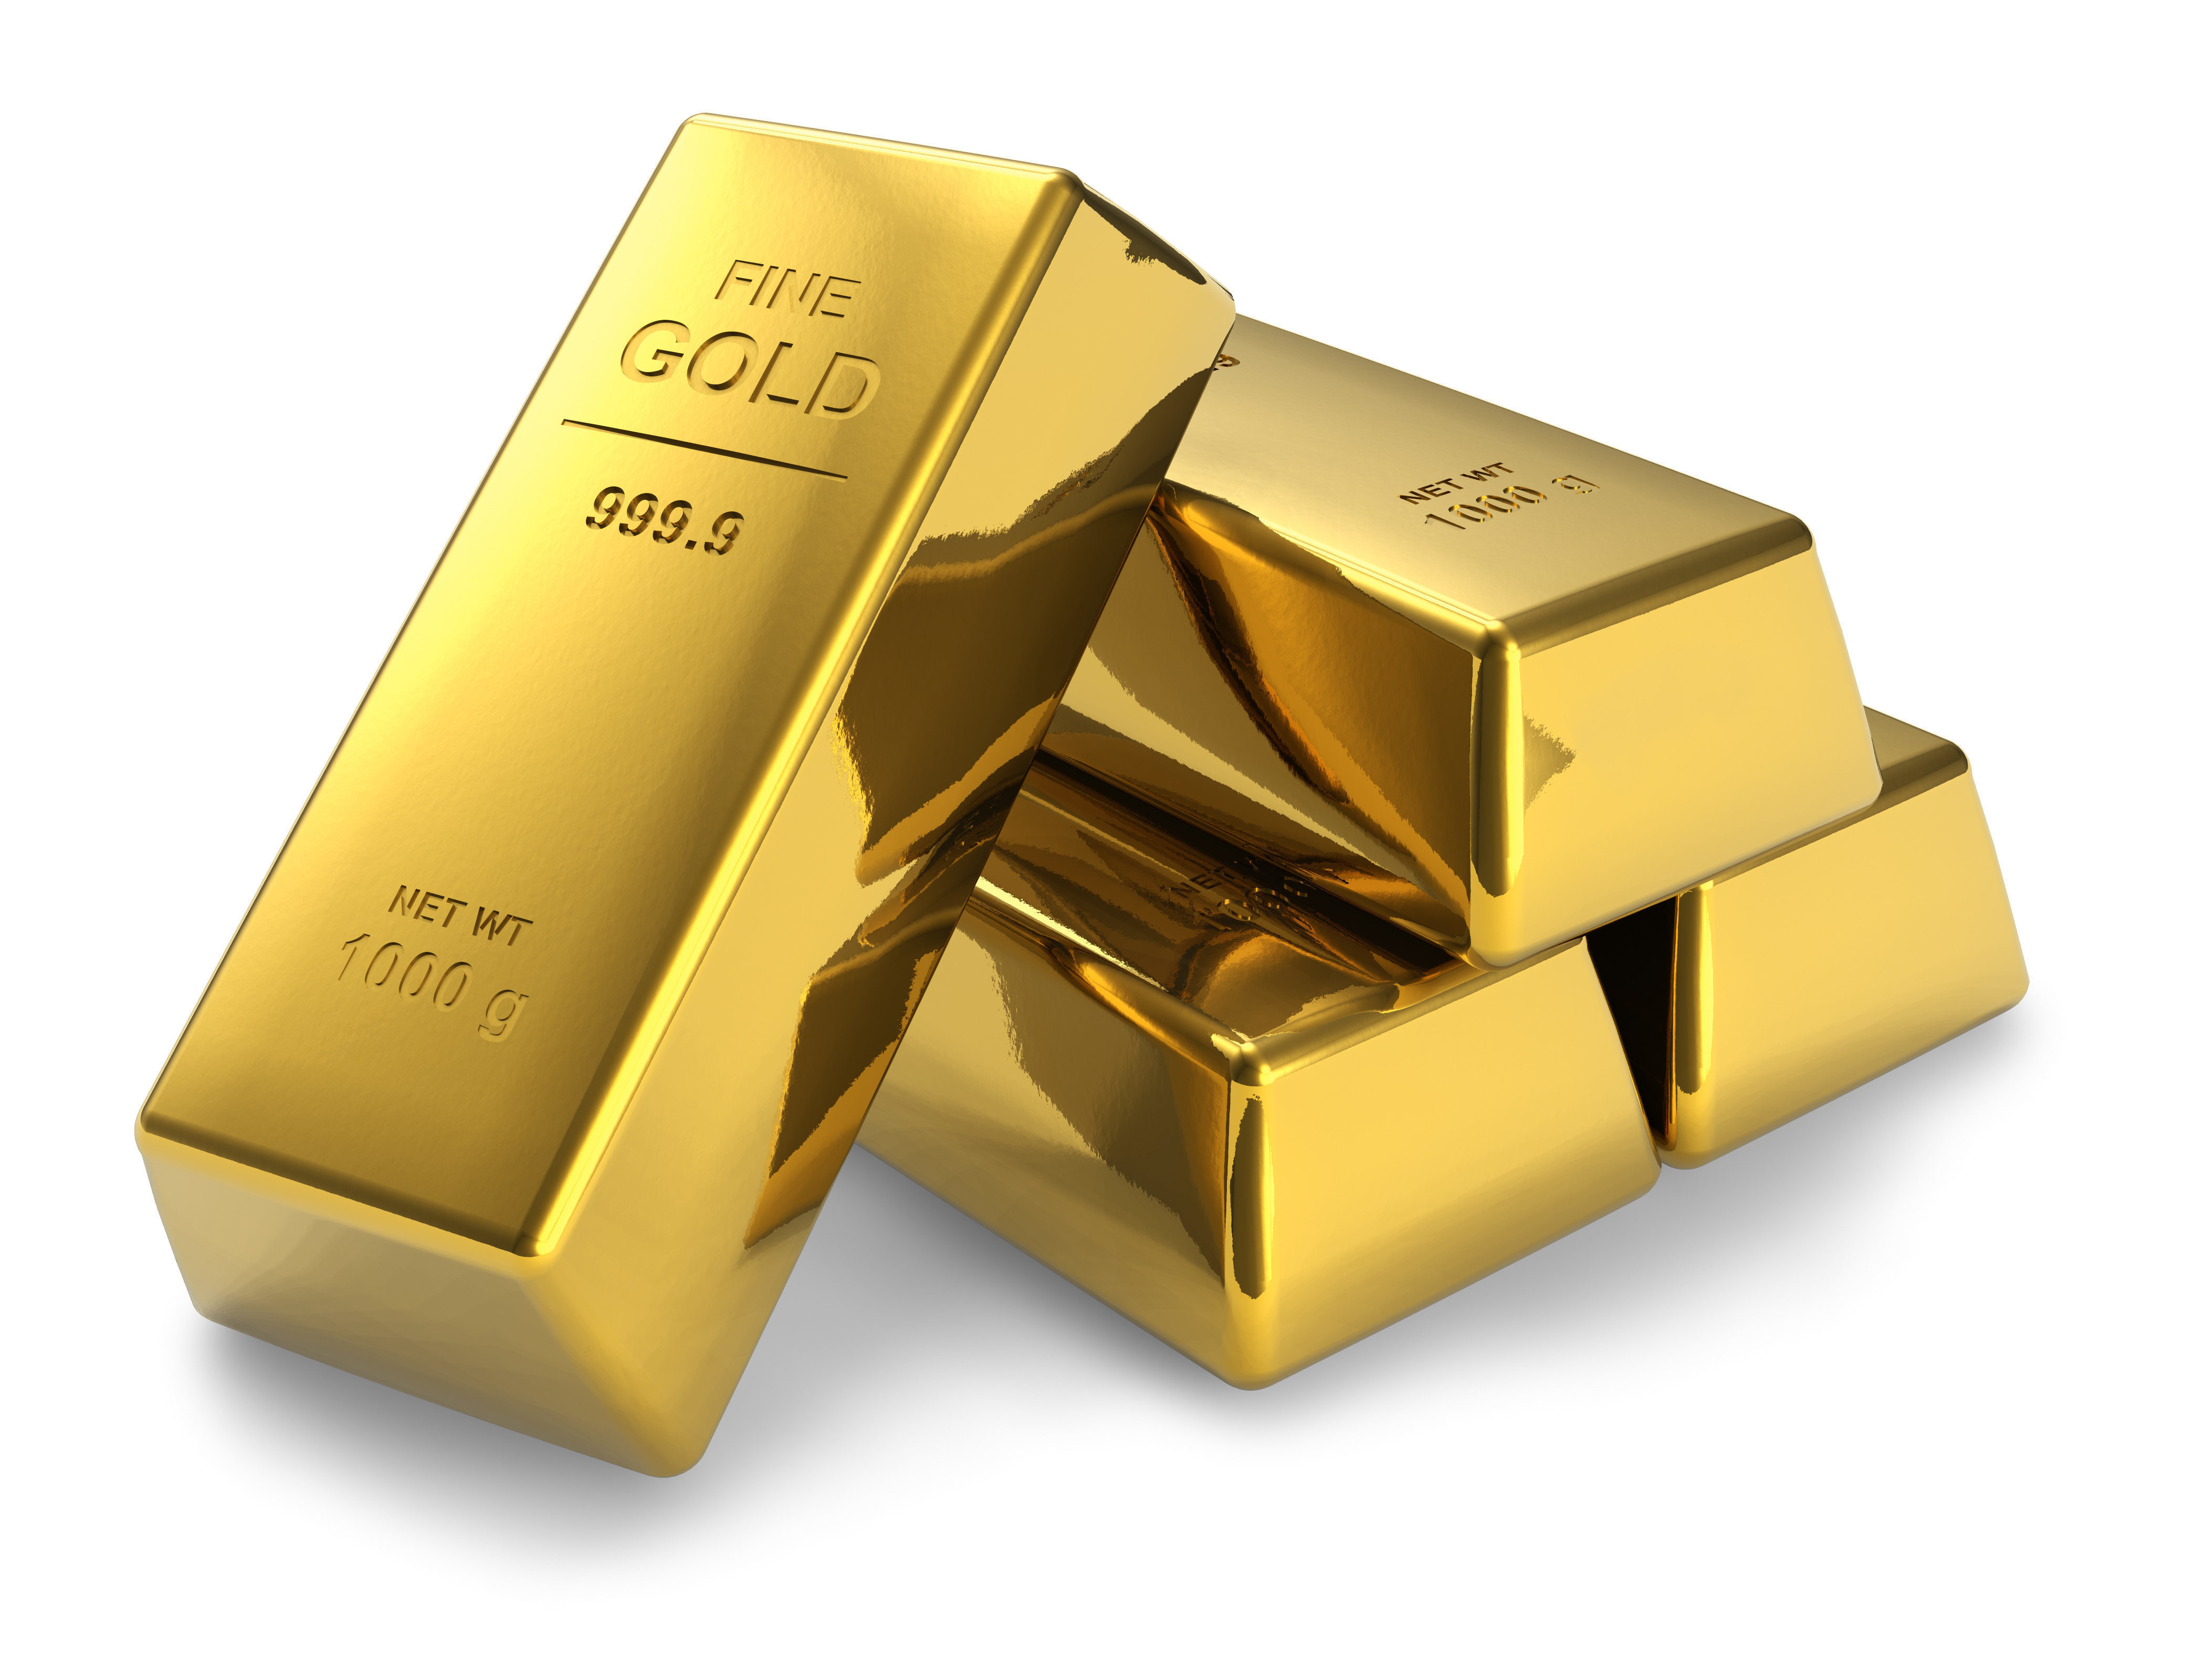 Today S Signal Change Probably Isn T Too Surprising Given The Pesky Correction That Has Been Plaguing Gold Question Is Whether It Arrived Late To